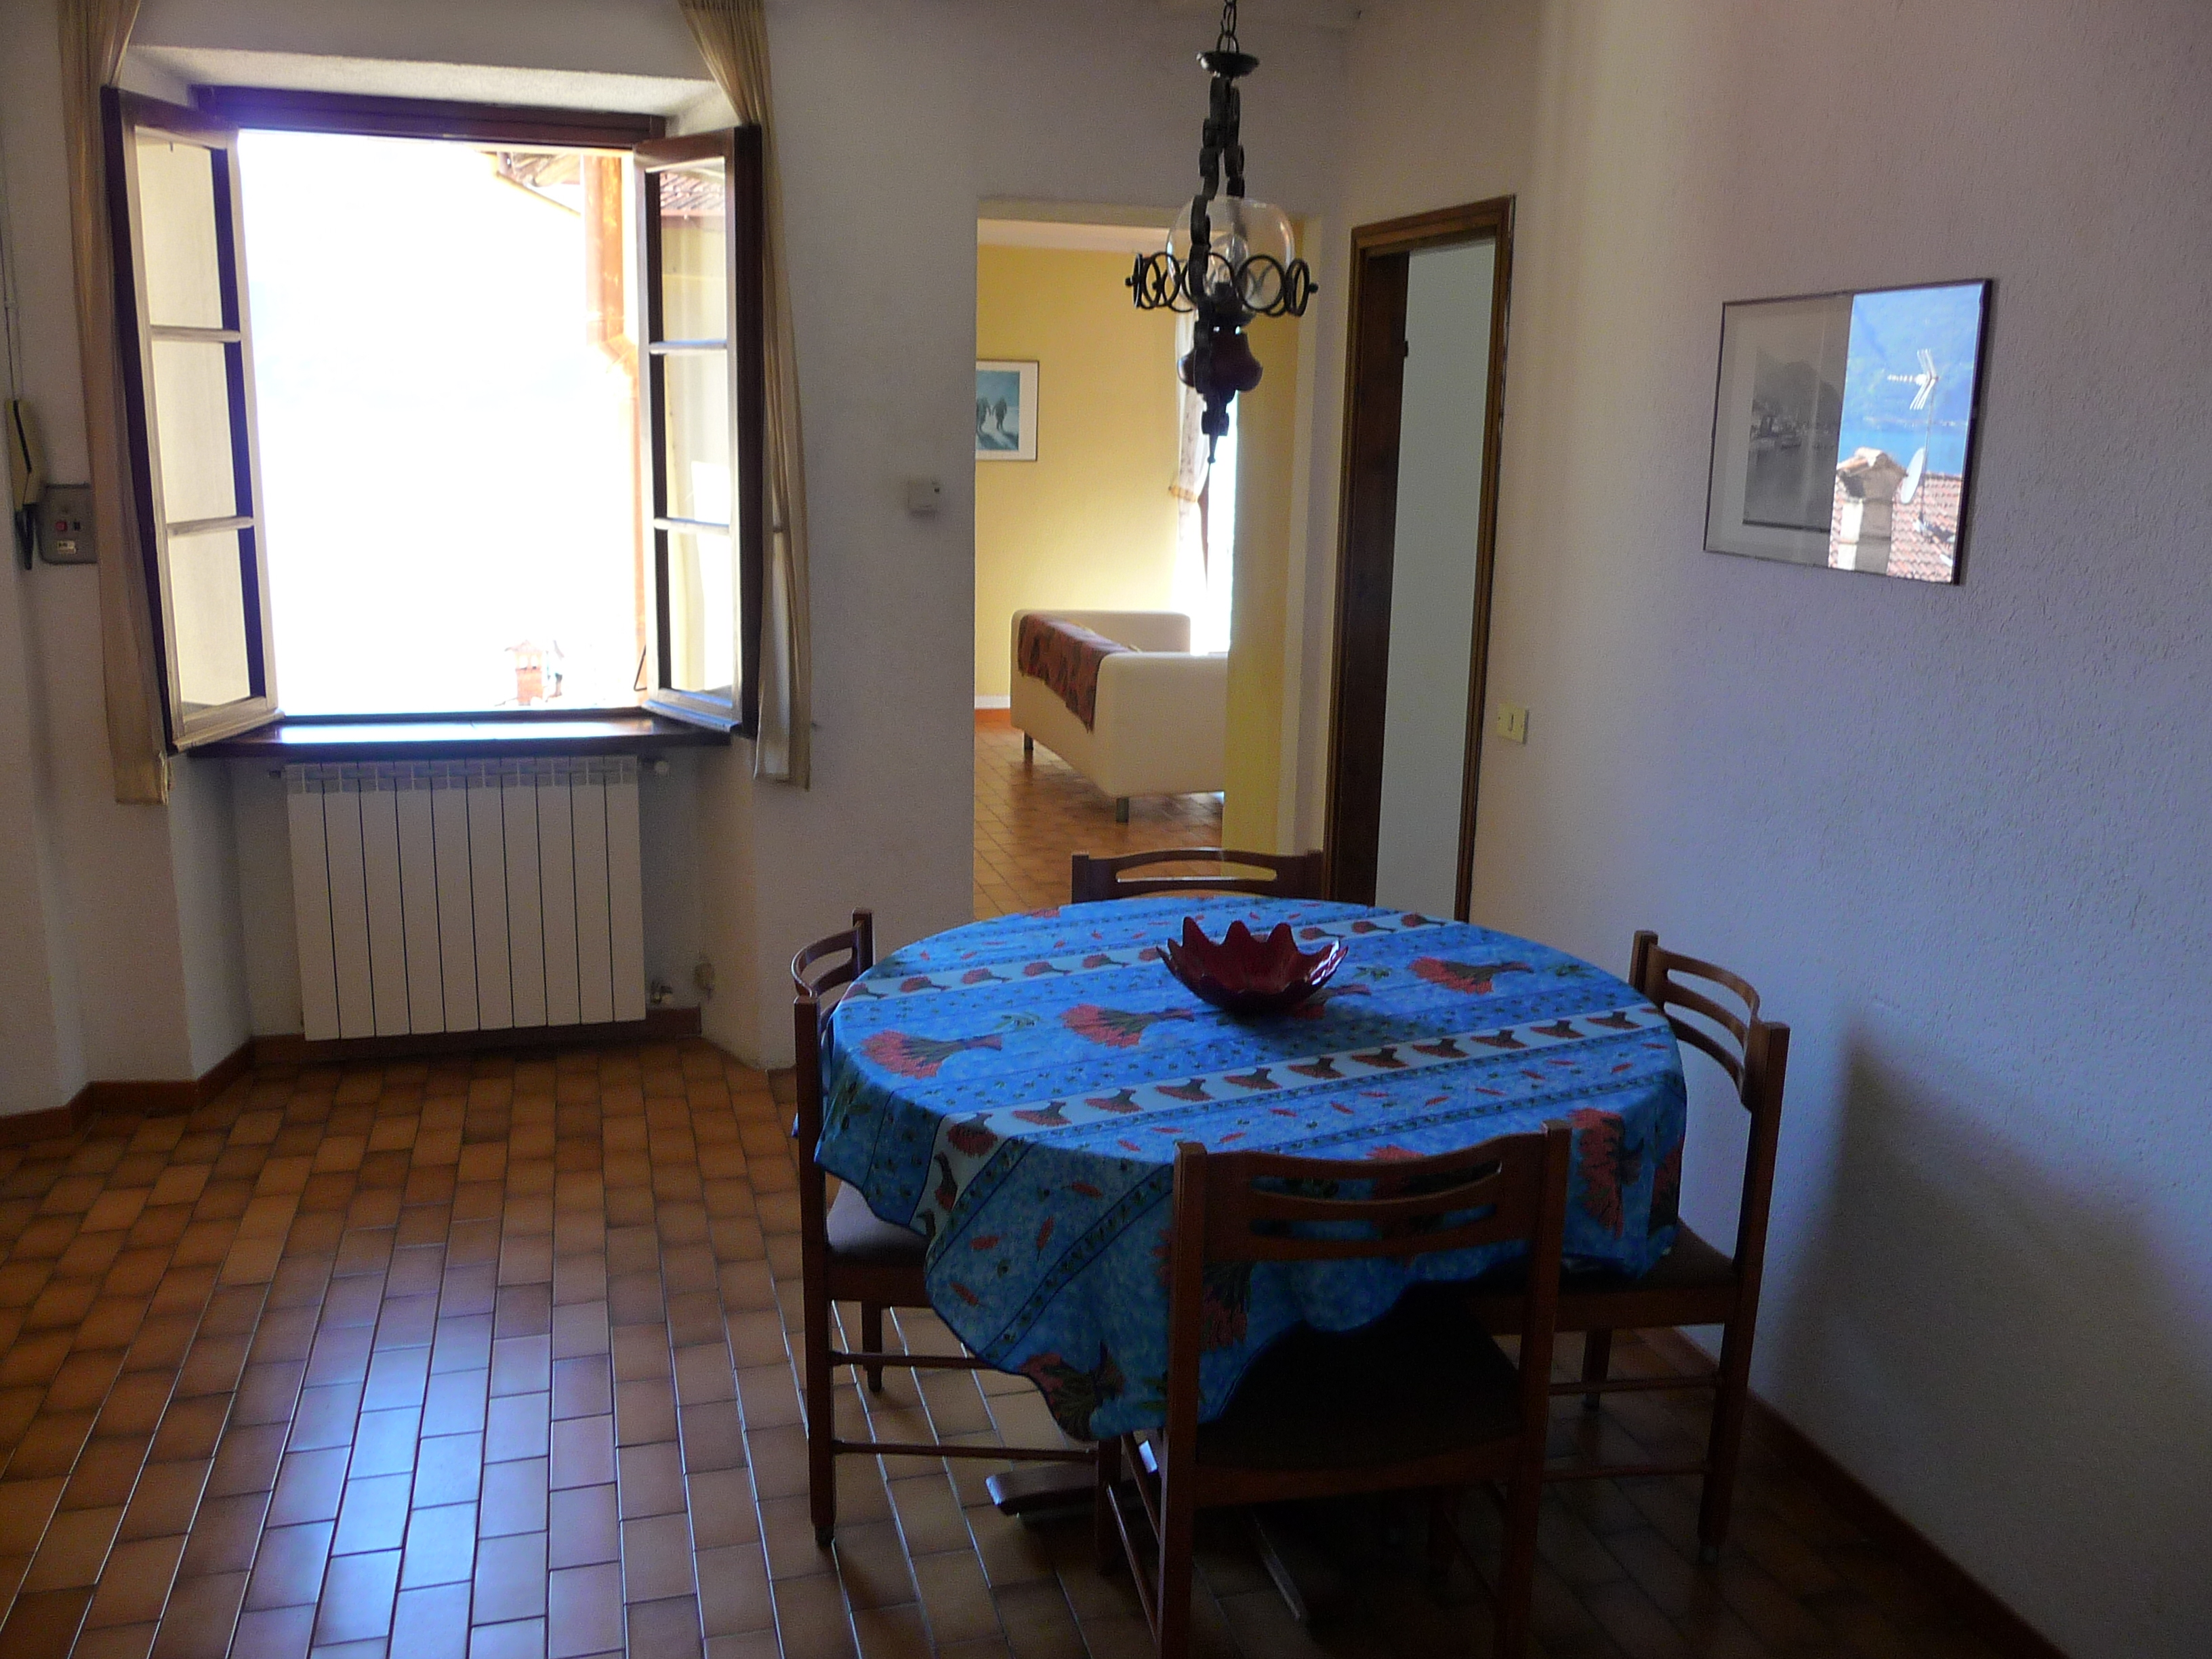 Menaggio,Apartments for rent in lake Como , Menaggio,Italy.Vacation rentals holiday accommodation from private owner,flats to let ,holidays in Menaggio lake Como,rental apartment,house rentals